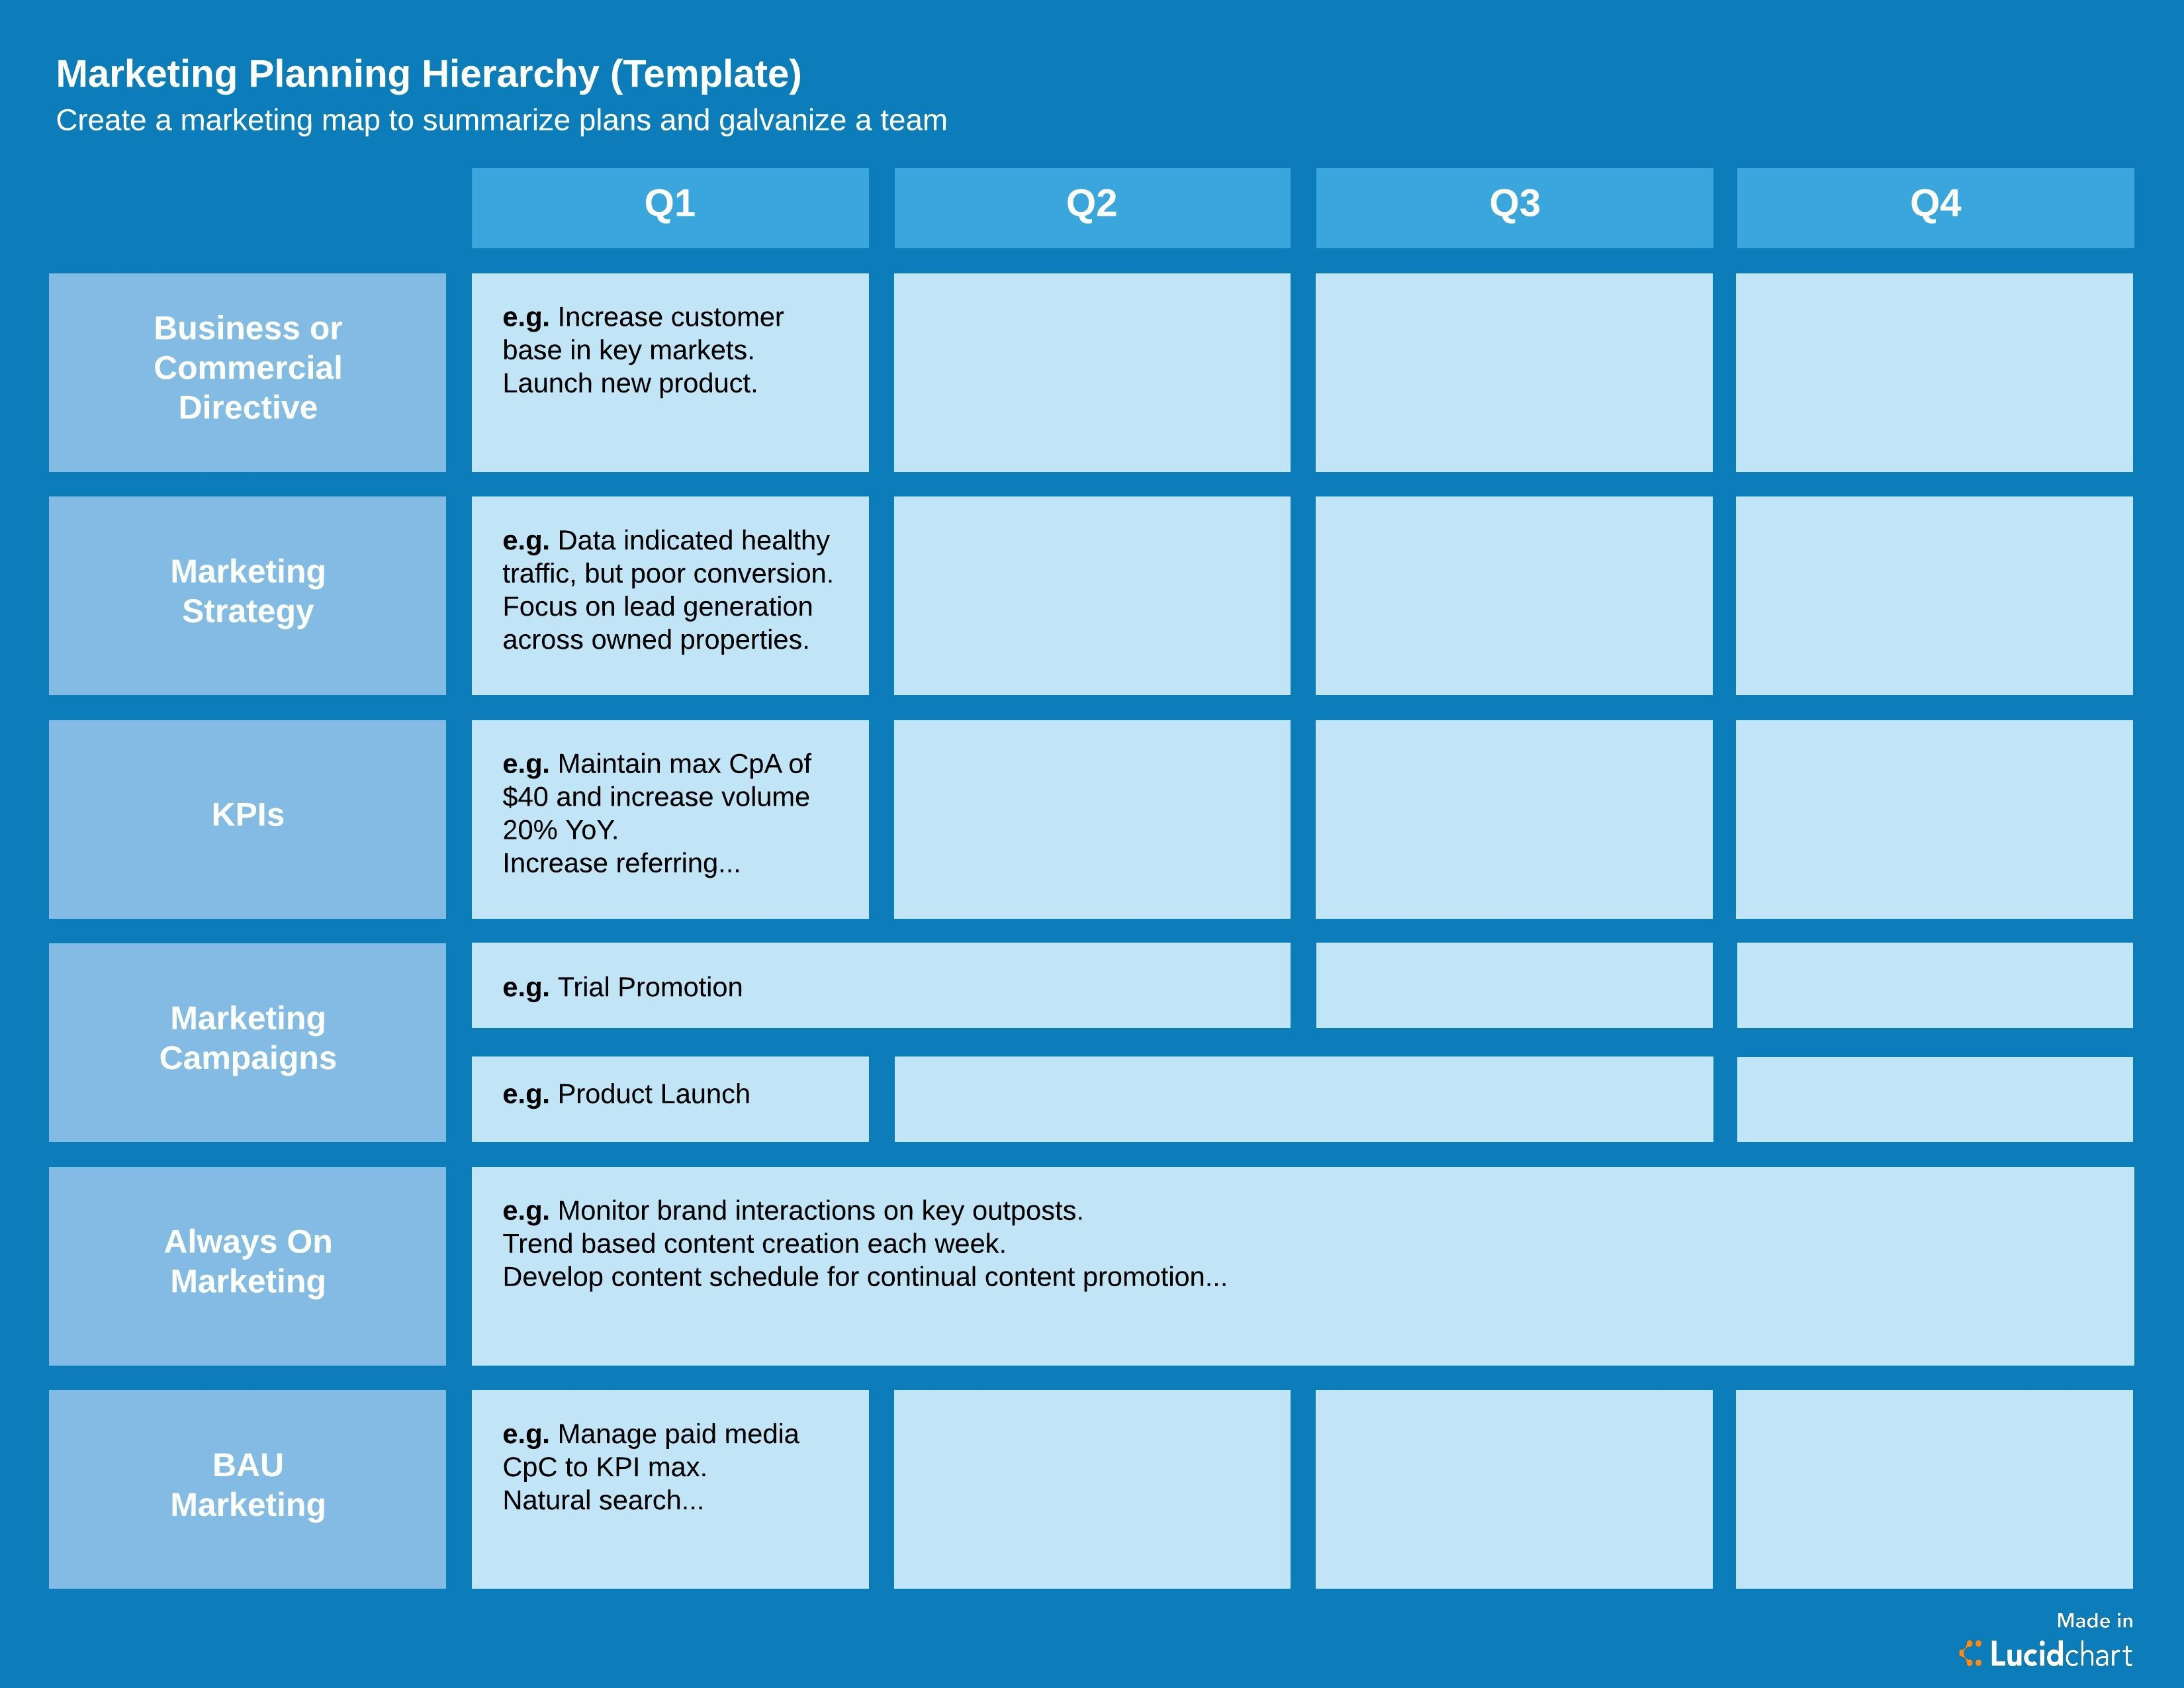 003 Shocking Product Launch Marketing Plan Template Free High Resolution Full